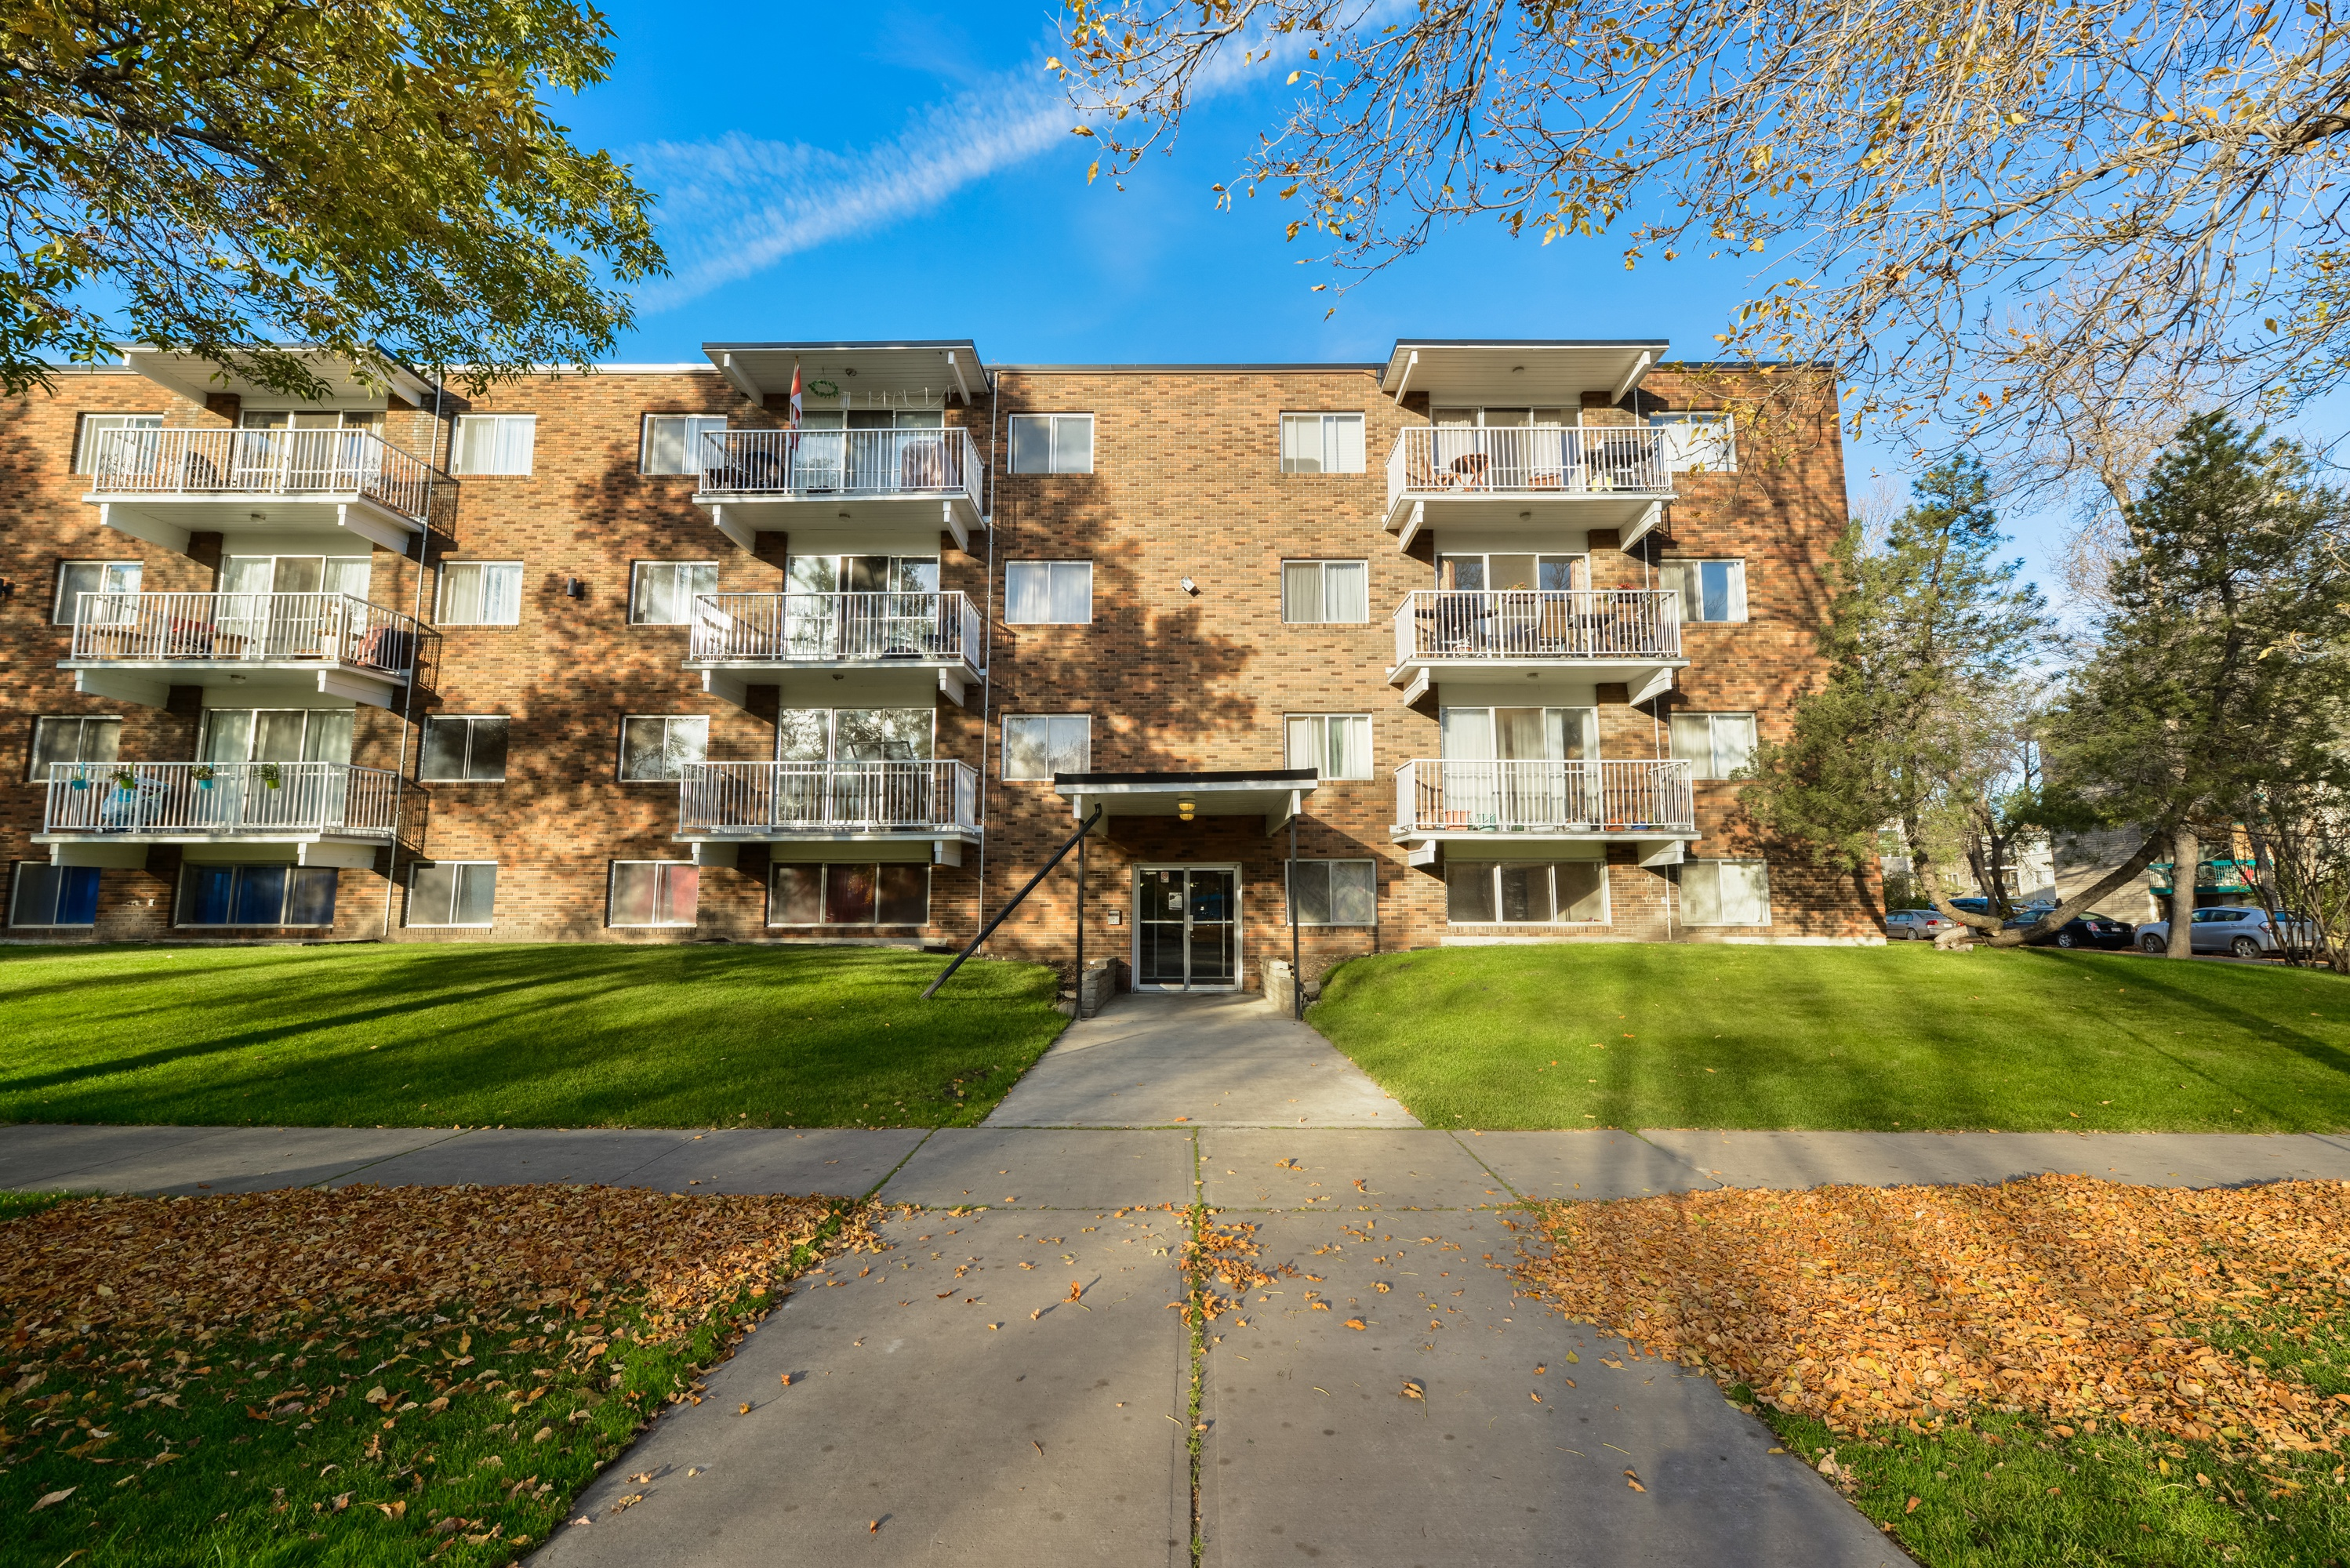 10250-115 St. in Edmonton, AB is Now Available